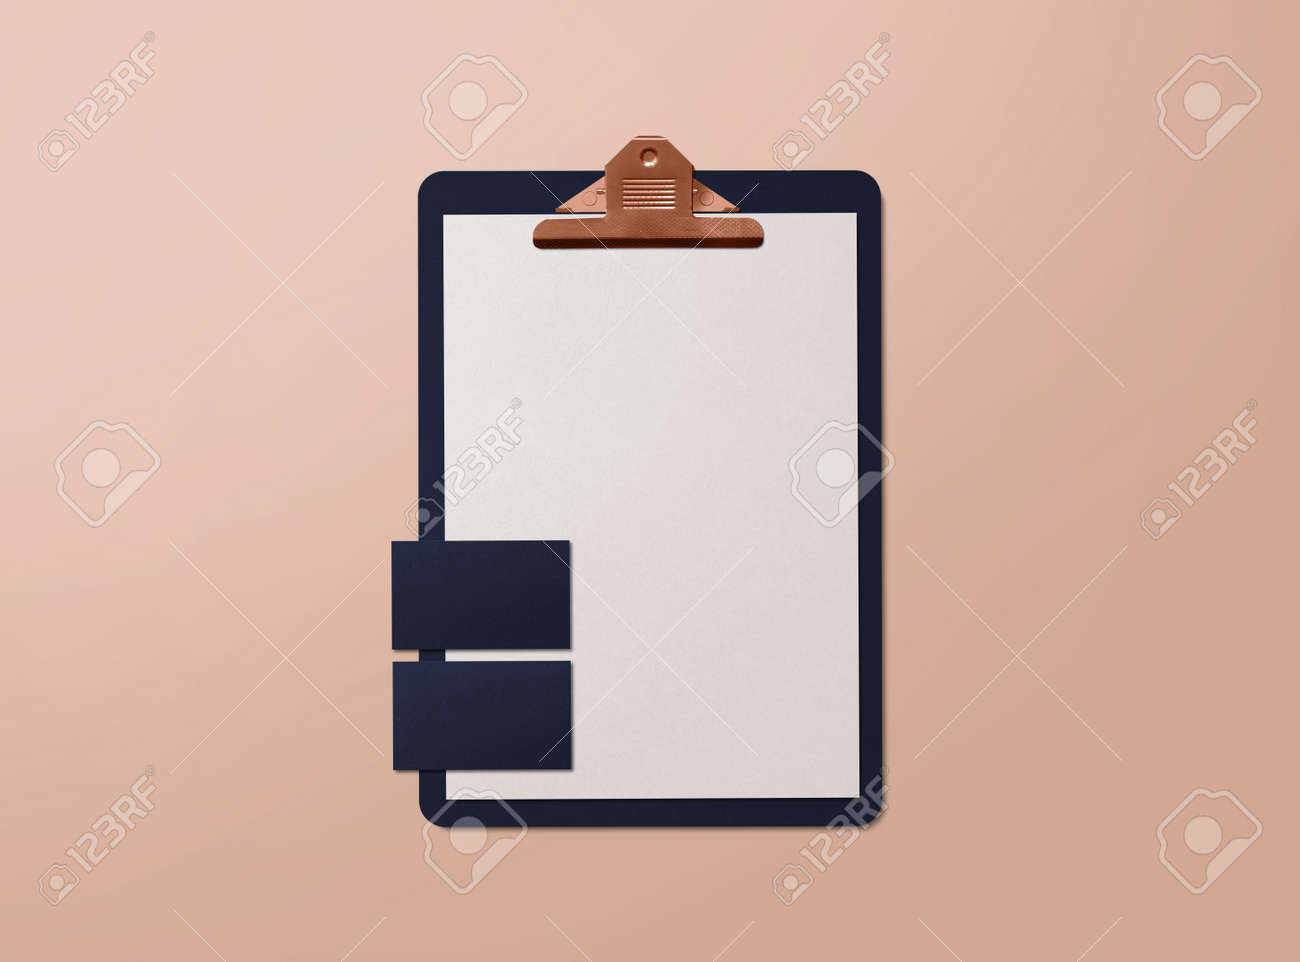 Realistic mockup. Clipboard with sheets of paper and business cards on background. Template for branding identity. Blank objects for placing your design. 3d illustration. - 152369669